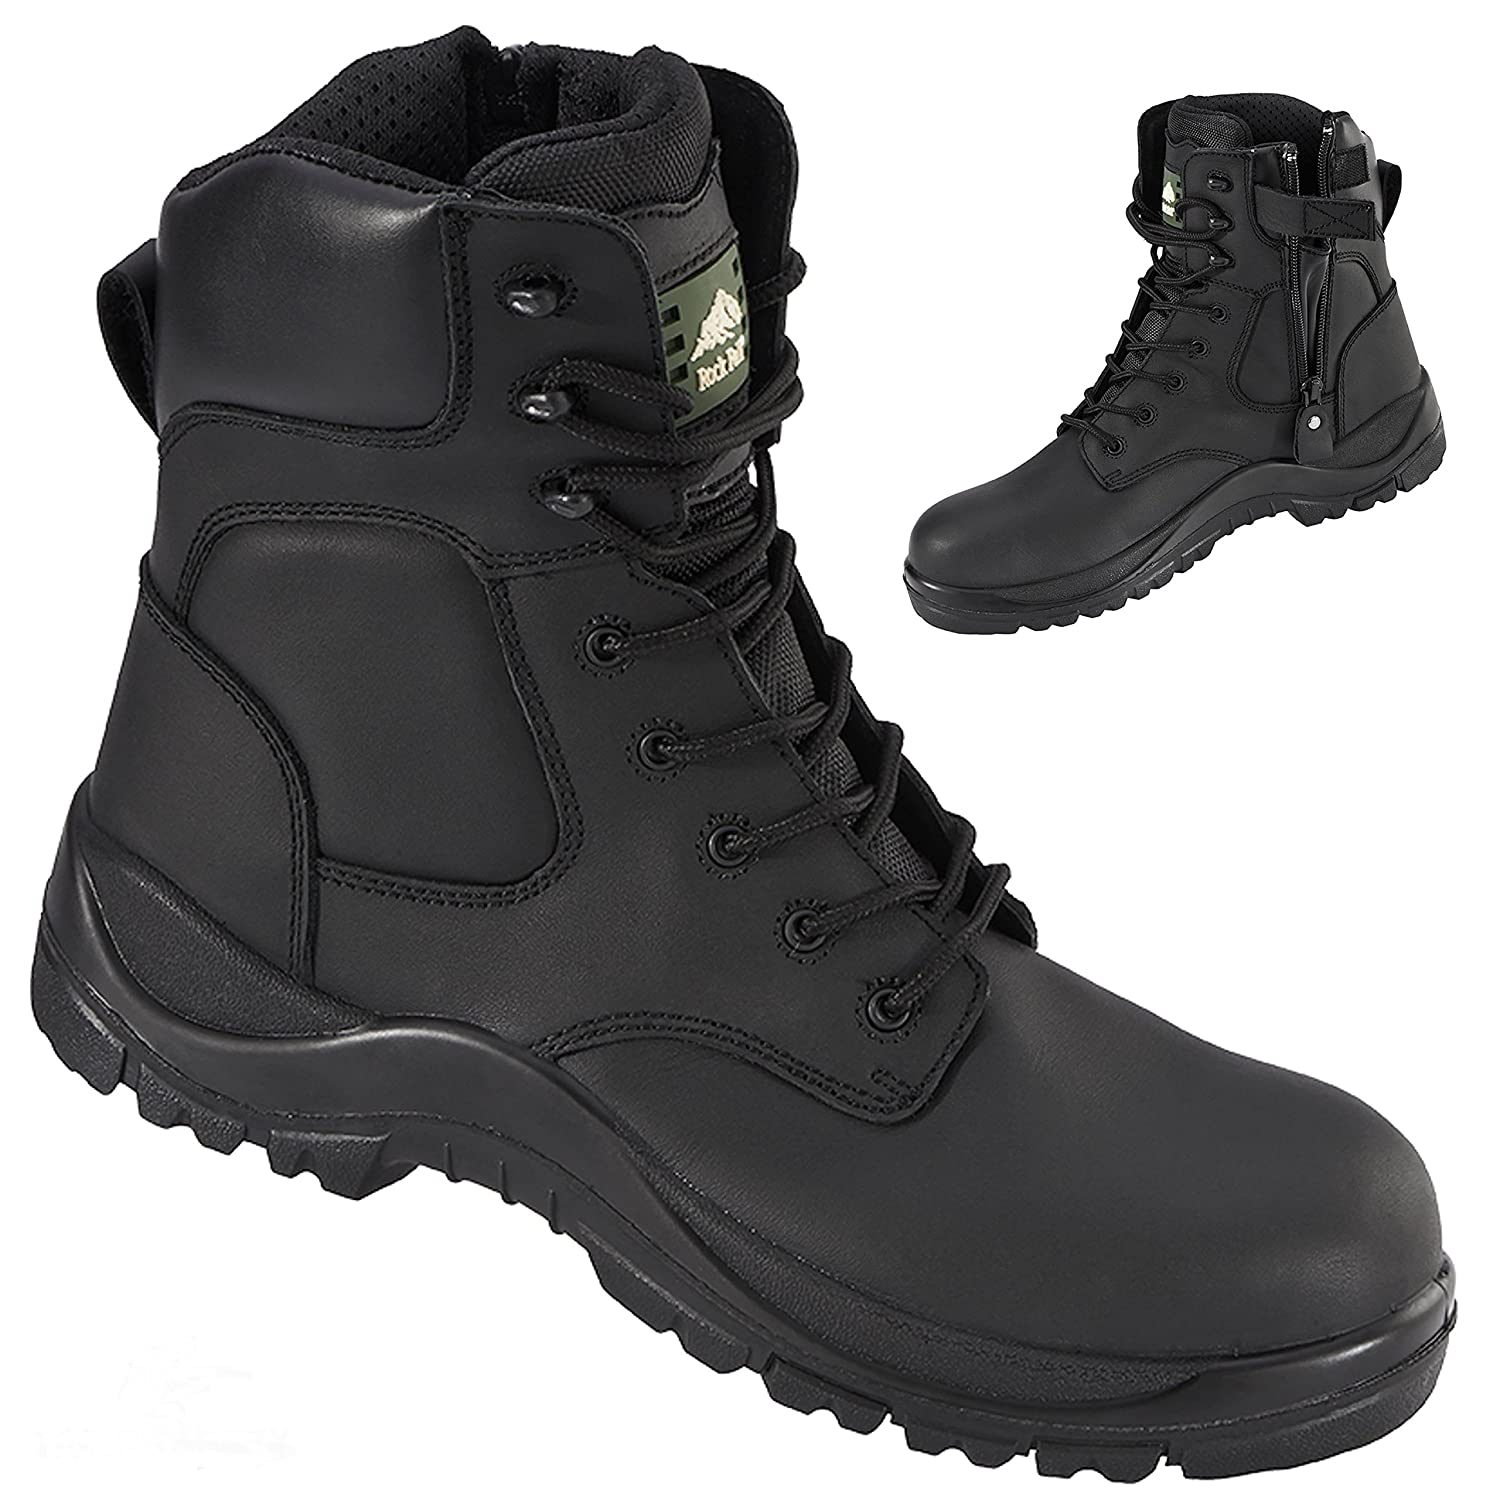 3fe799cd0b6 Rock Fall Melanite RF333 Waterproof Wide Fit Zip Up Non Metallic Safety  Boots